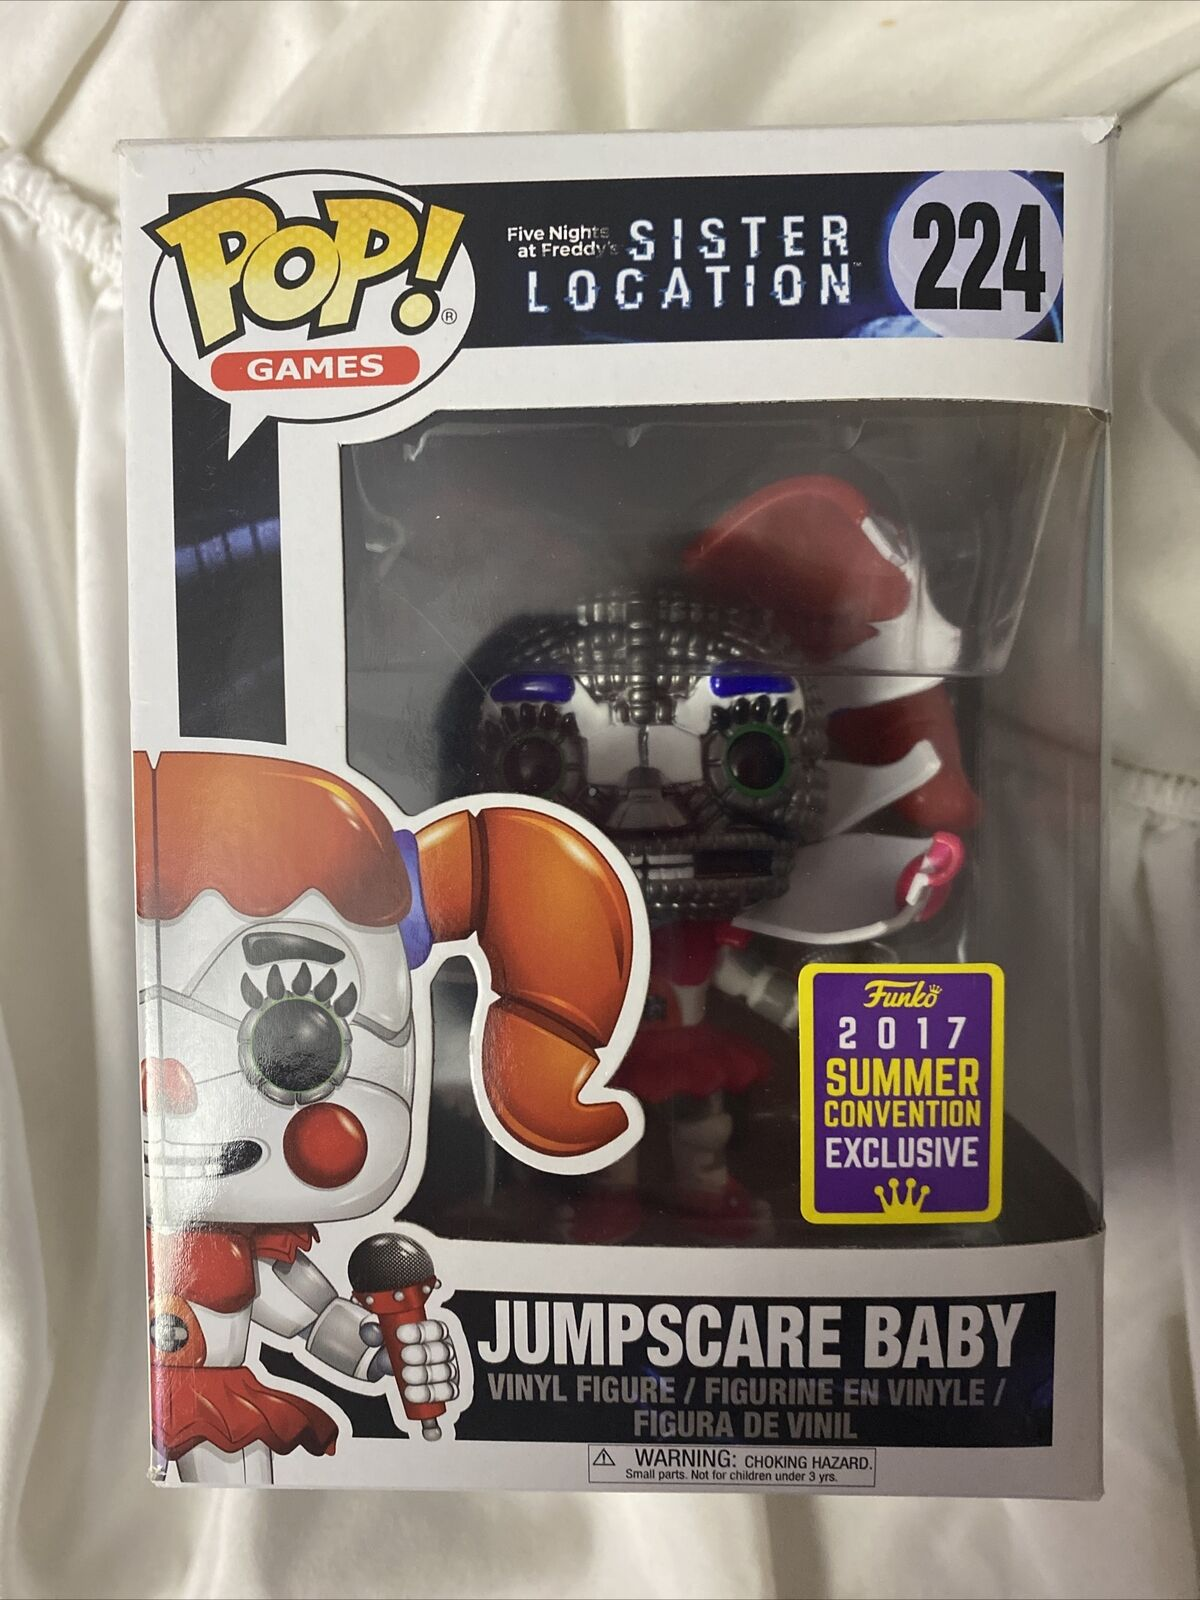 Jumpscare Baby Summer Conve POP Games Five Nights at Freddy/'s Sister Location